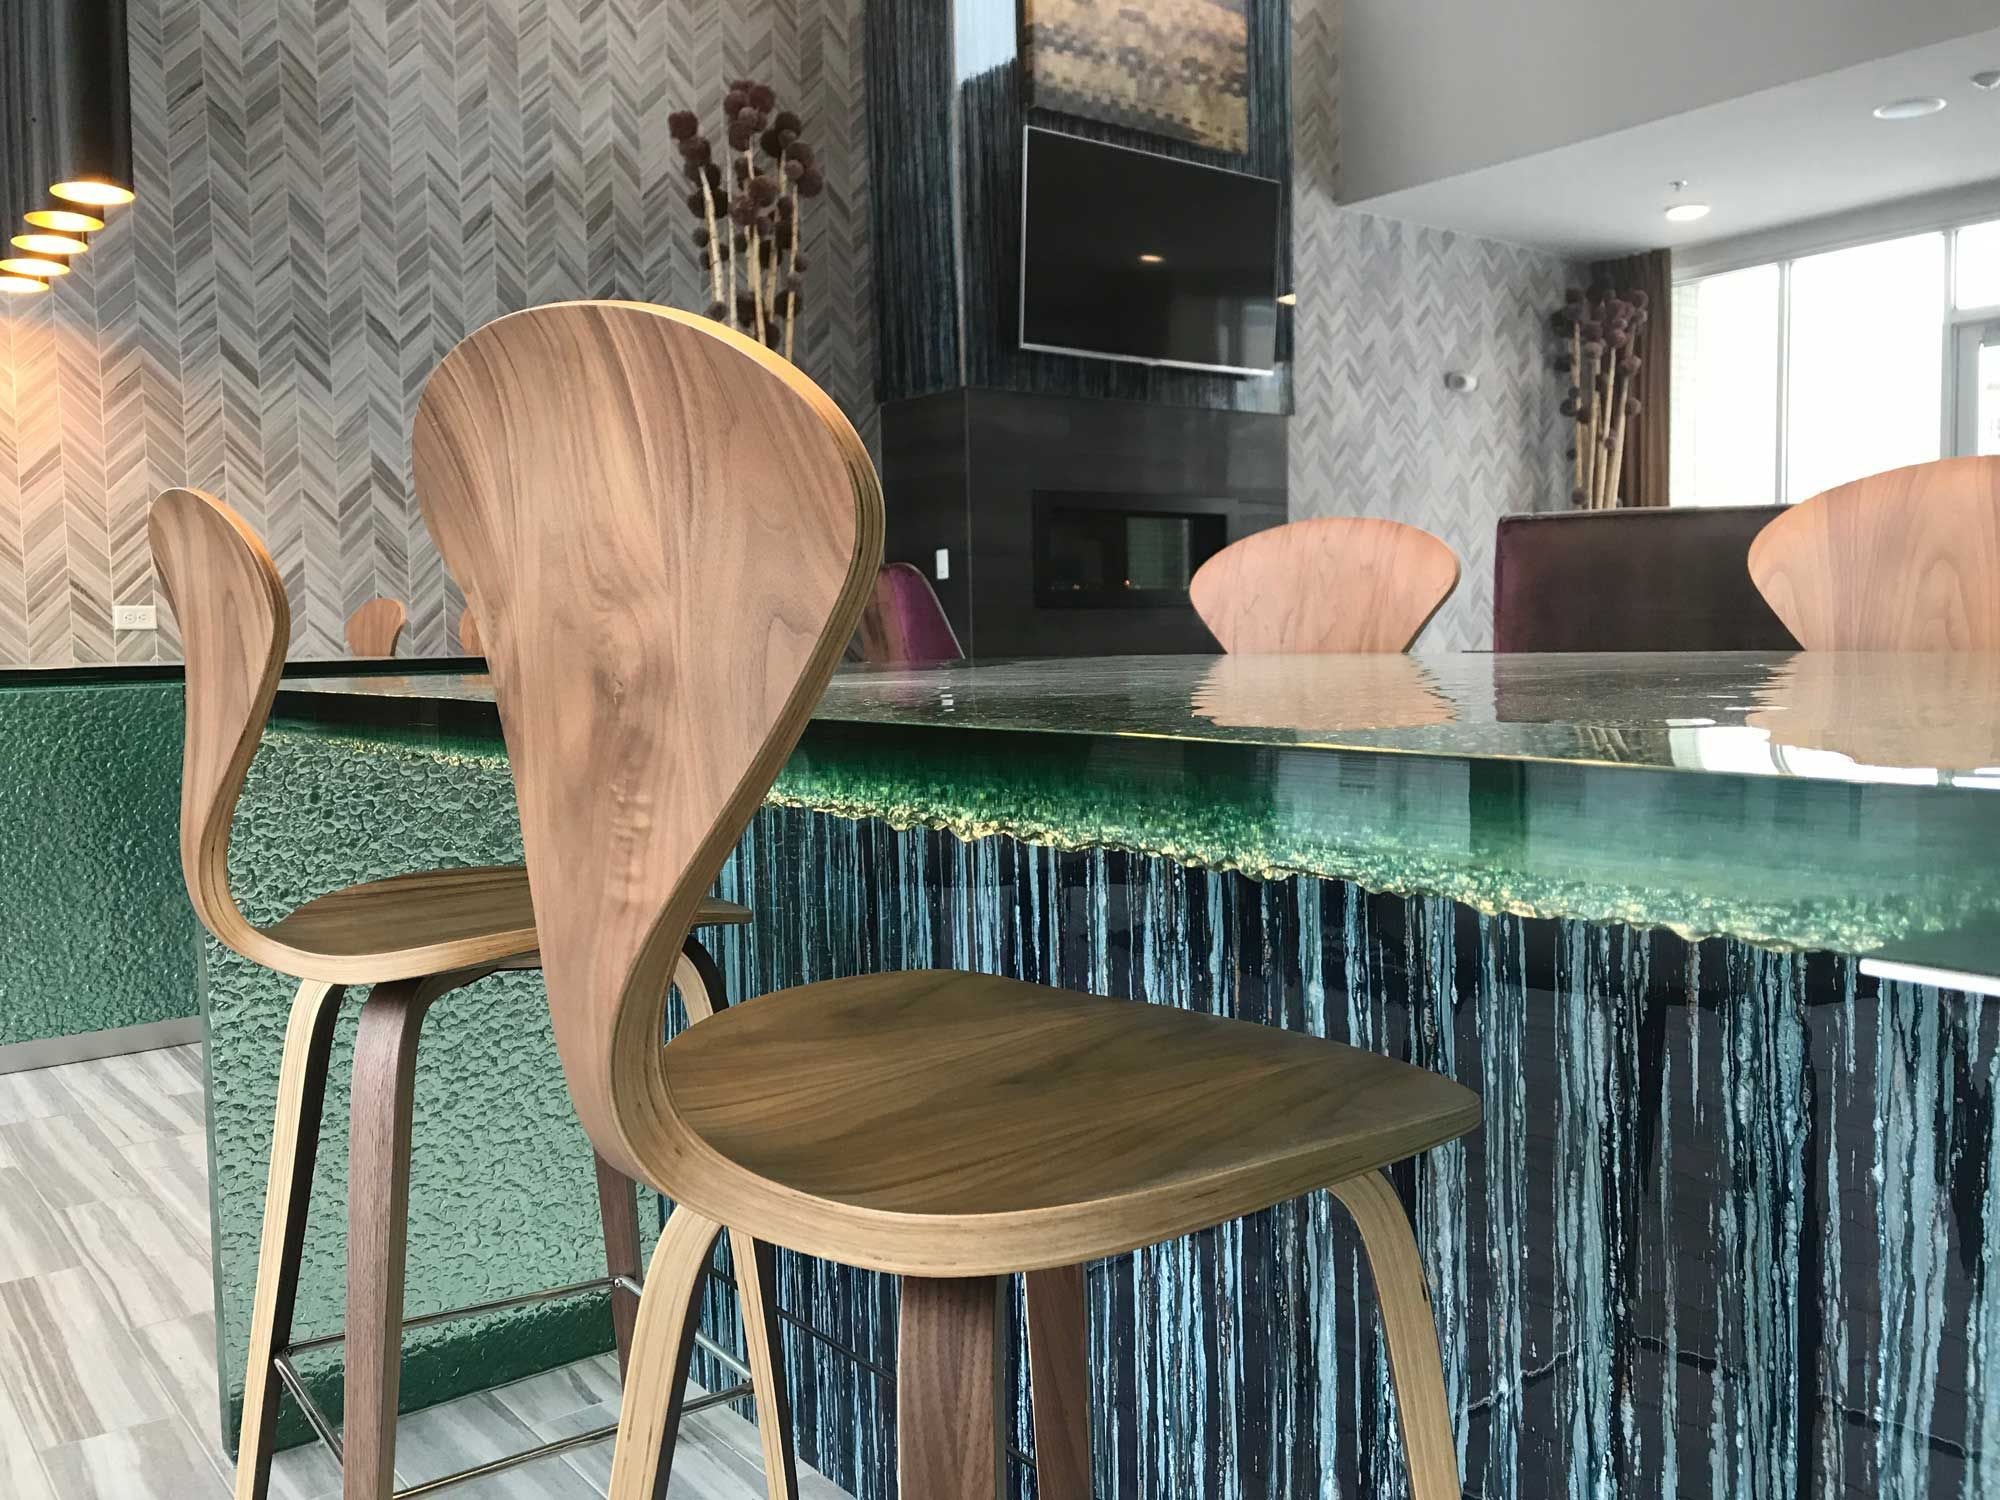 Jockimo Inc The Advanced Architectural Products Specialists Glass Flooring Antique Mirrors Cast Glass And More Glass Countertops Glass Floor Glass Decor